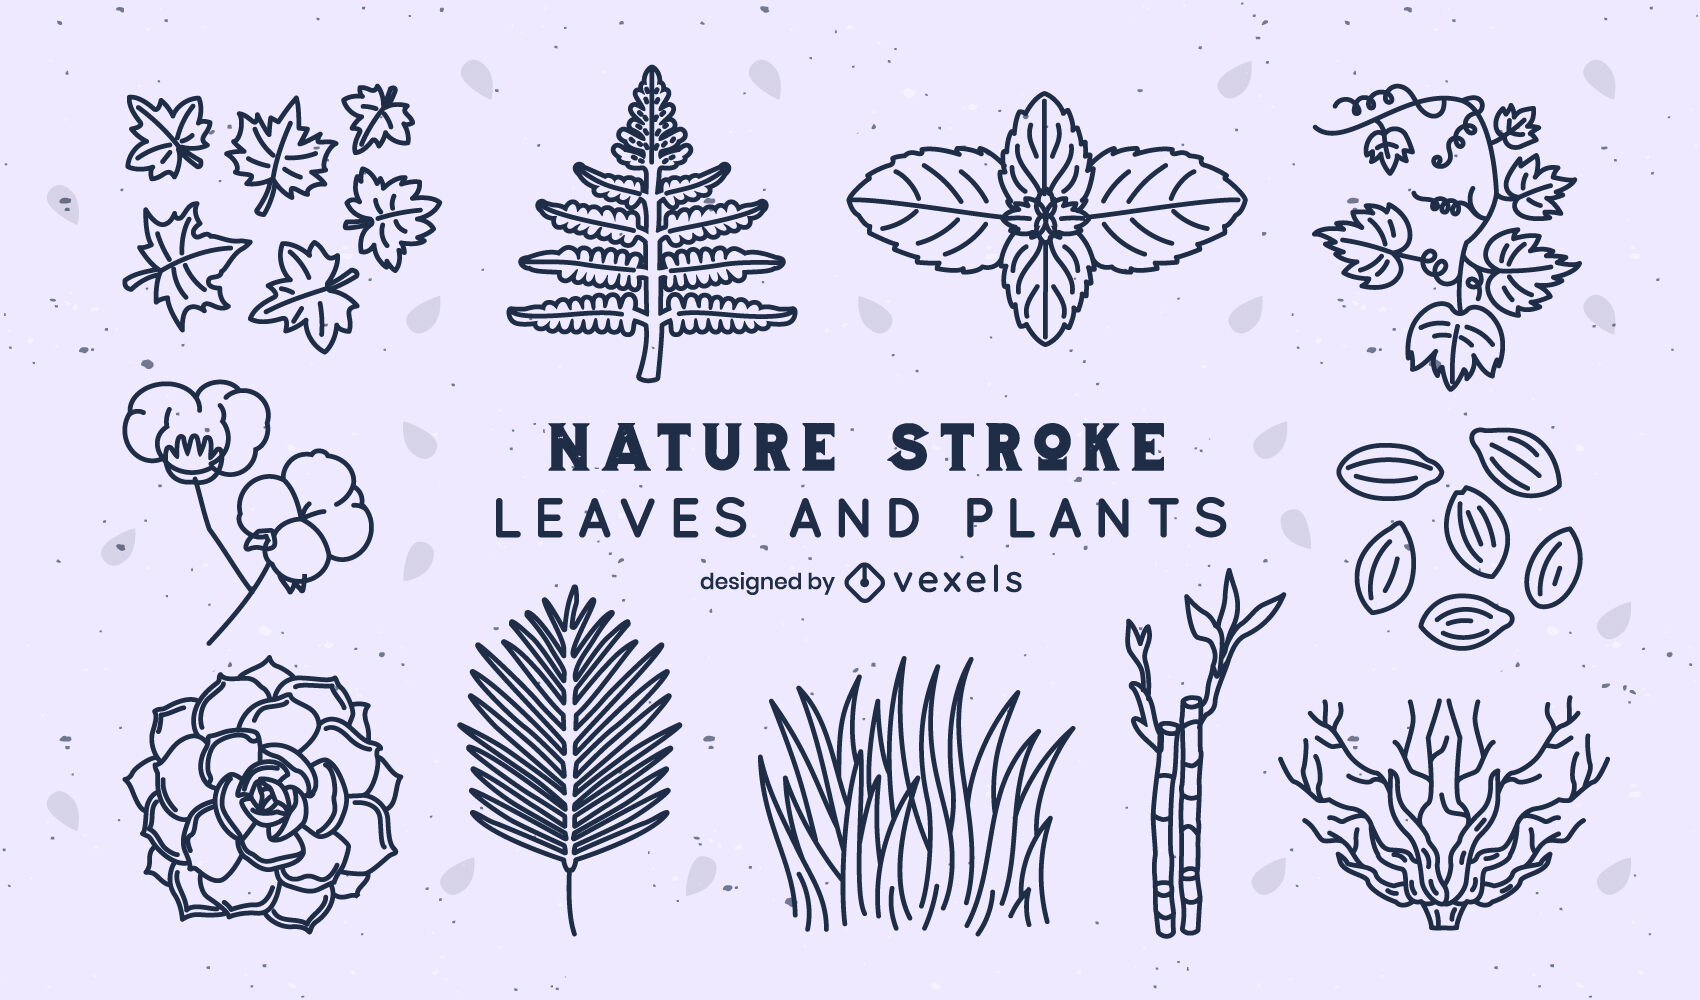 Leaves and plants nature stroke pack